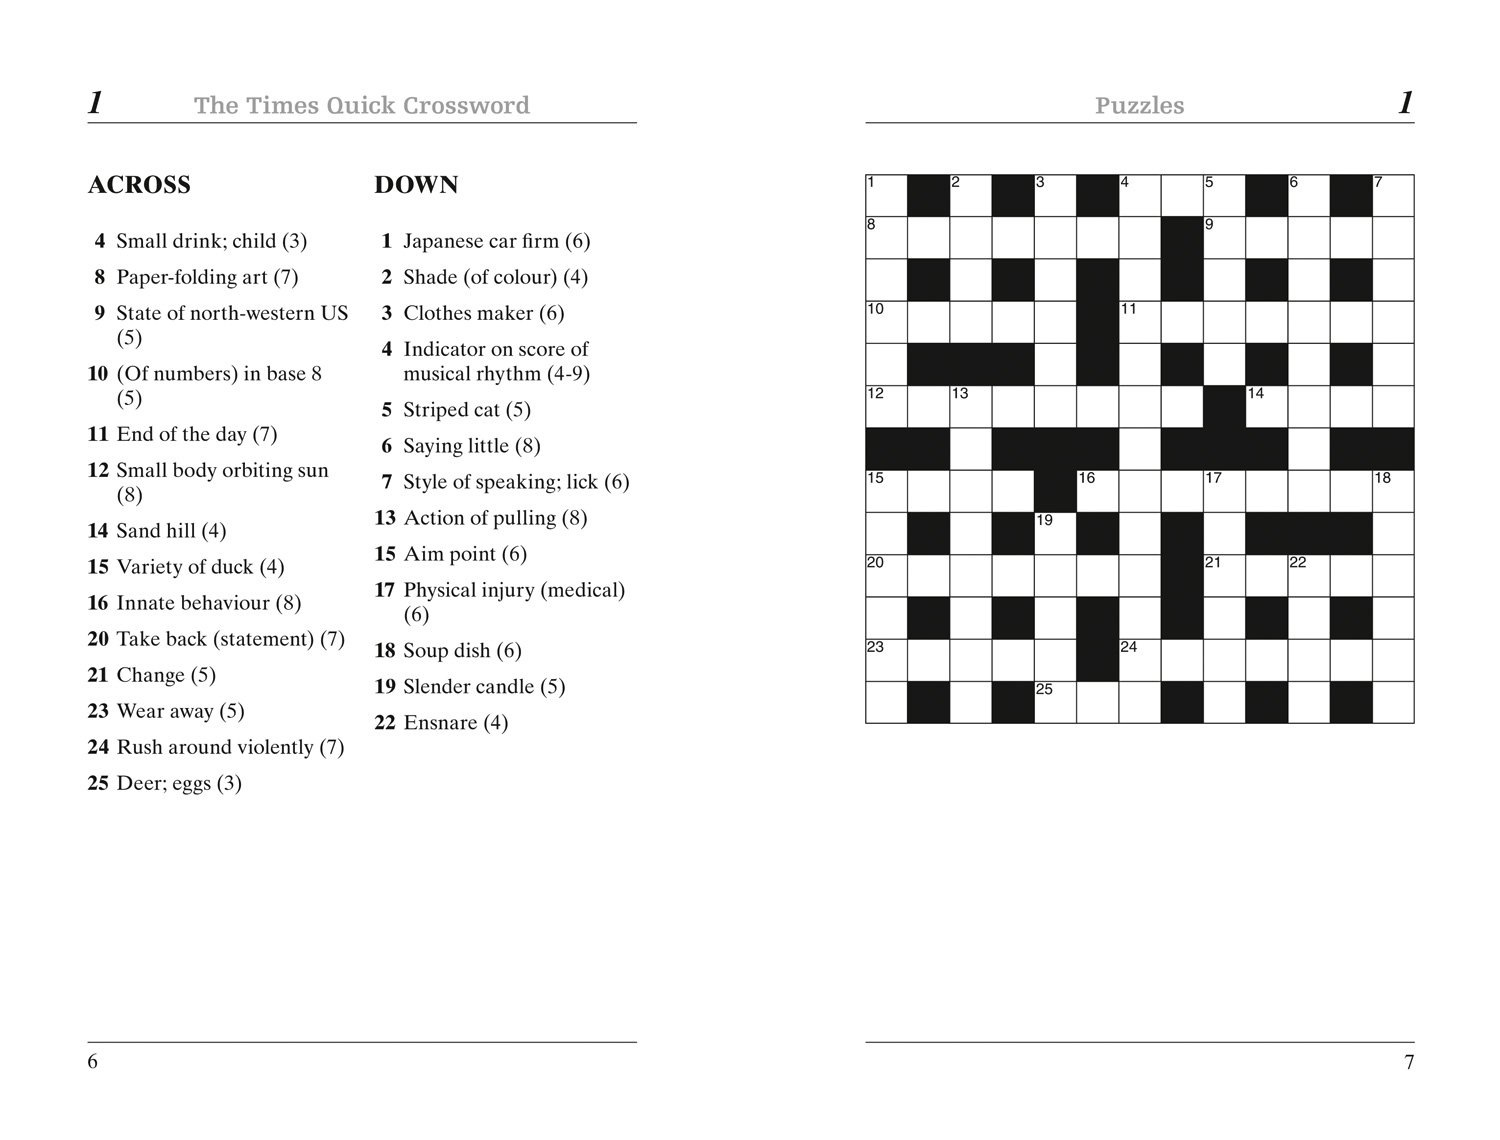 Golf Term Crossword Clue Elegant The Times Quick Crossword Book 19 - Printable Golf Crossword Puzzles